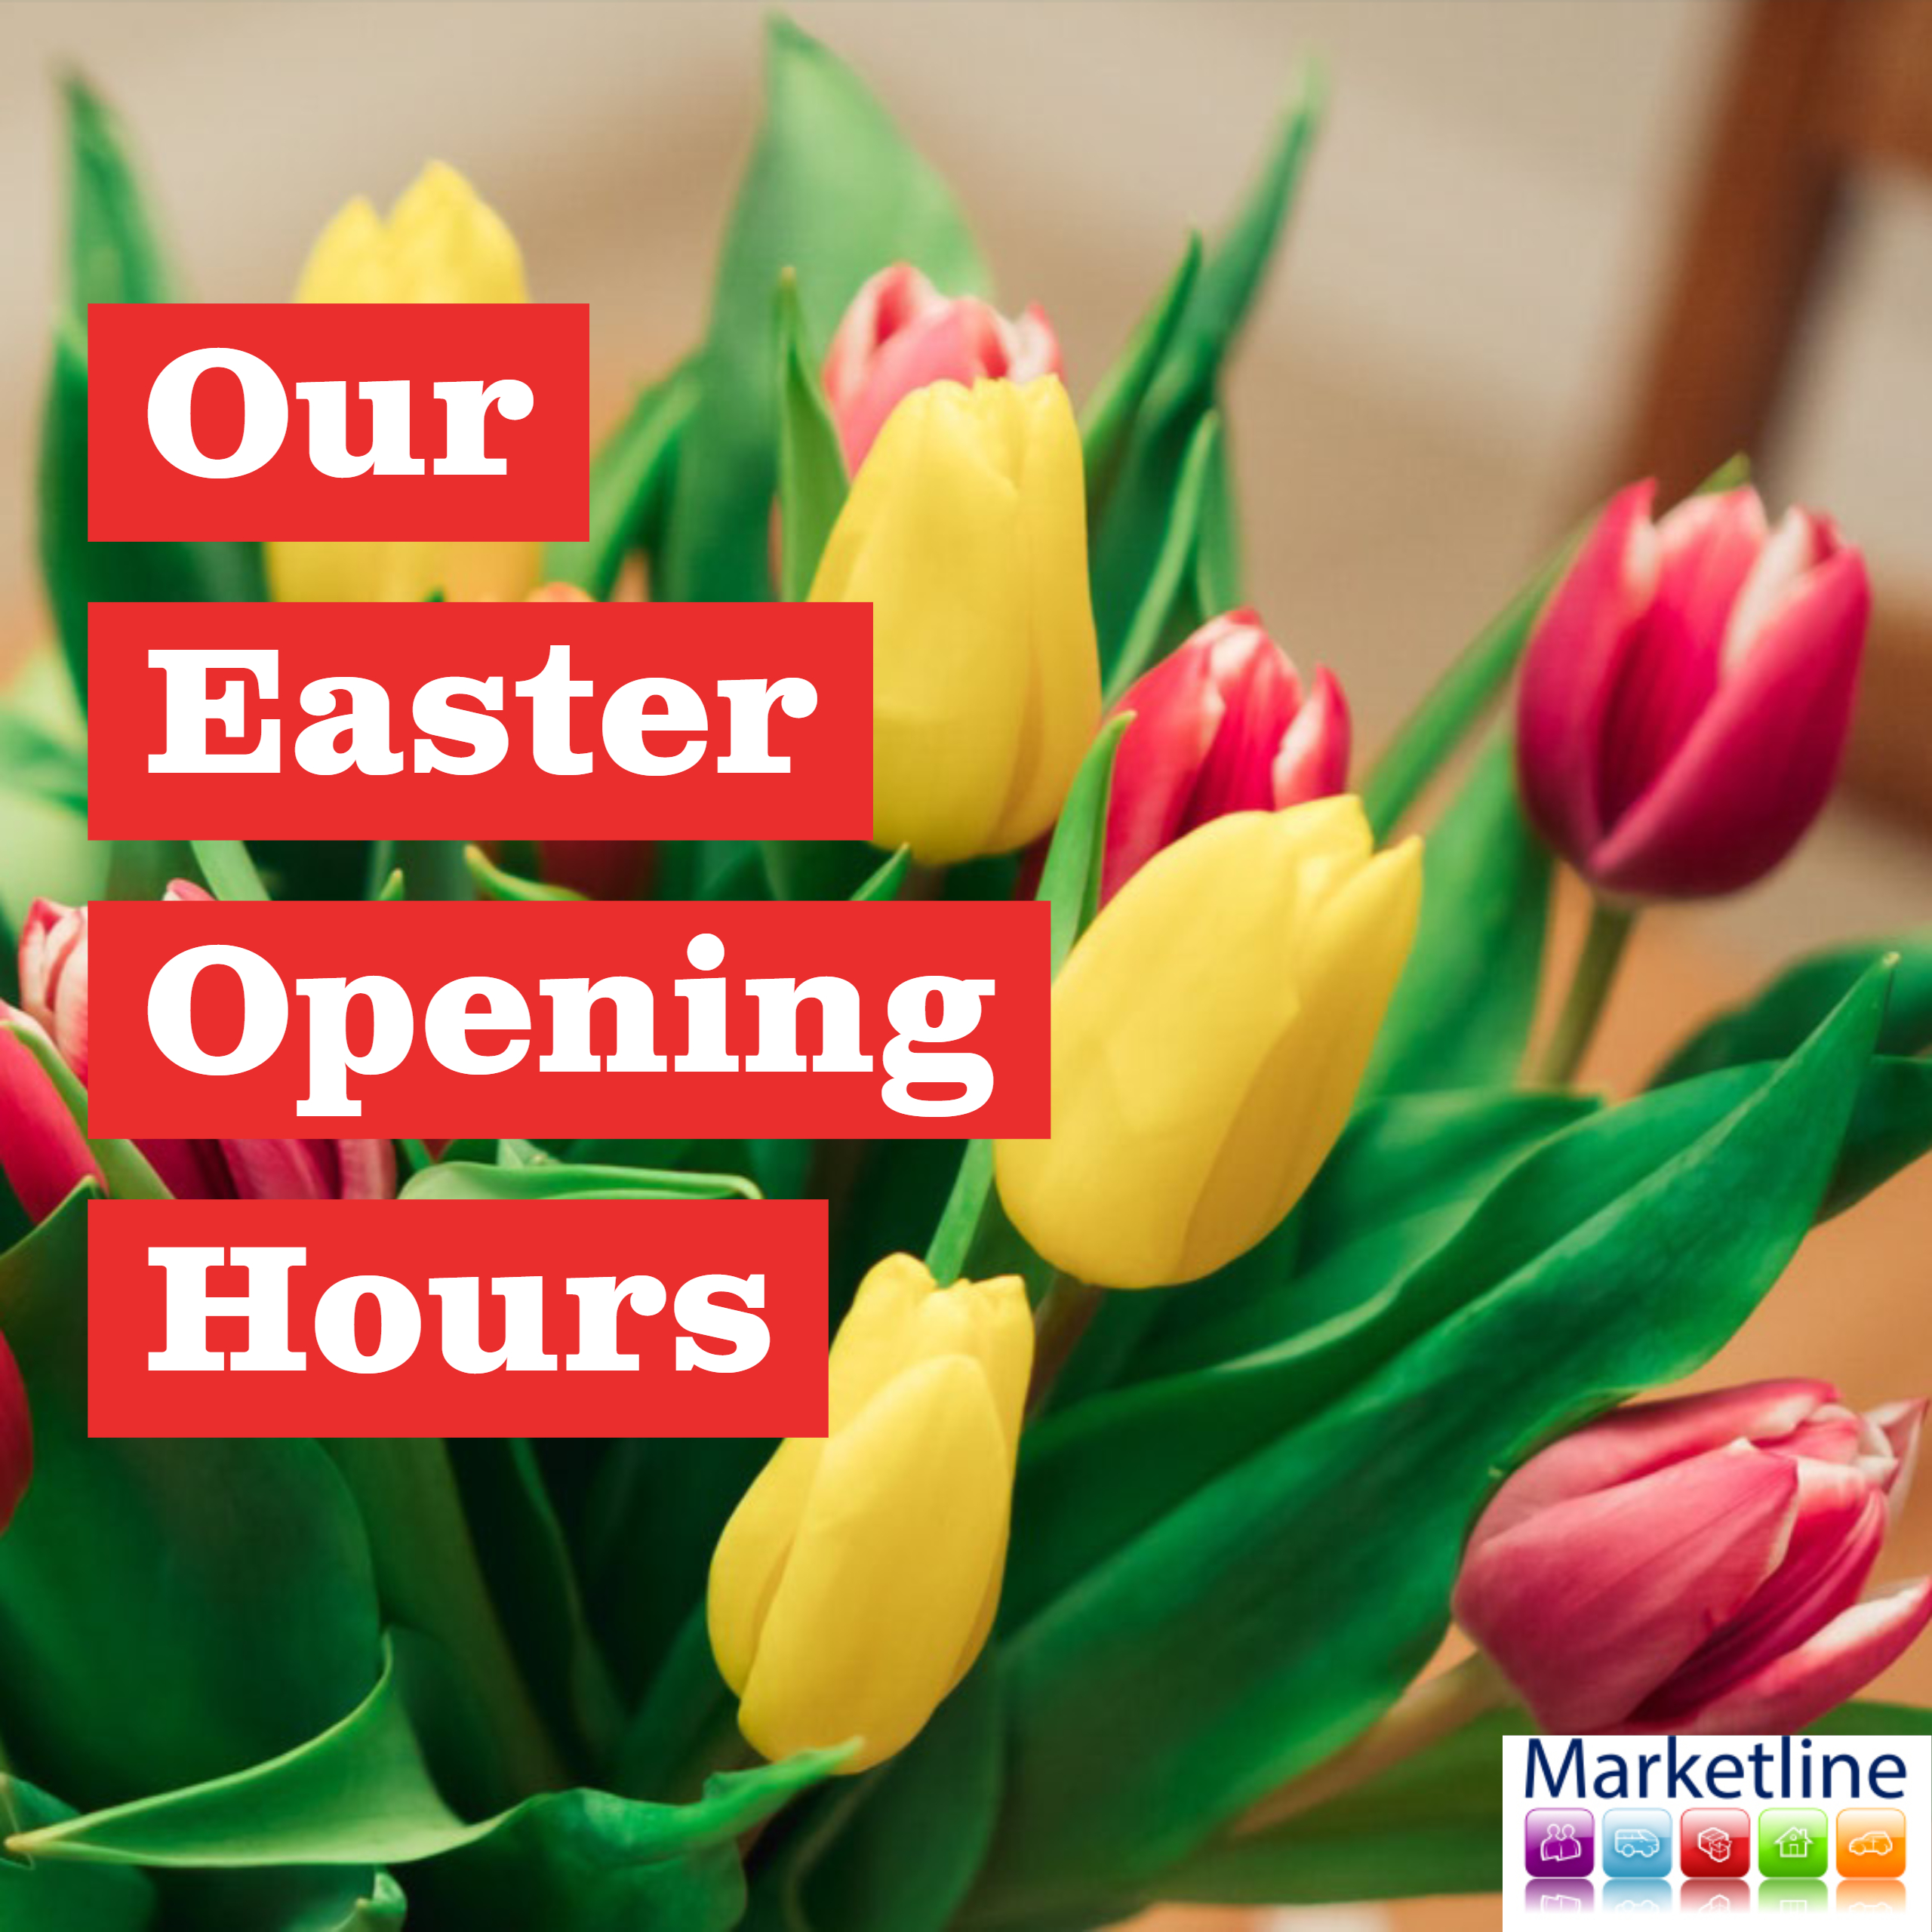 Our Easter Opening Hours 2019